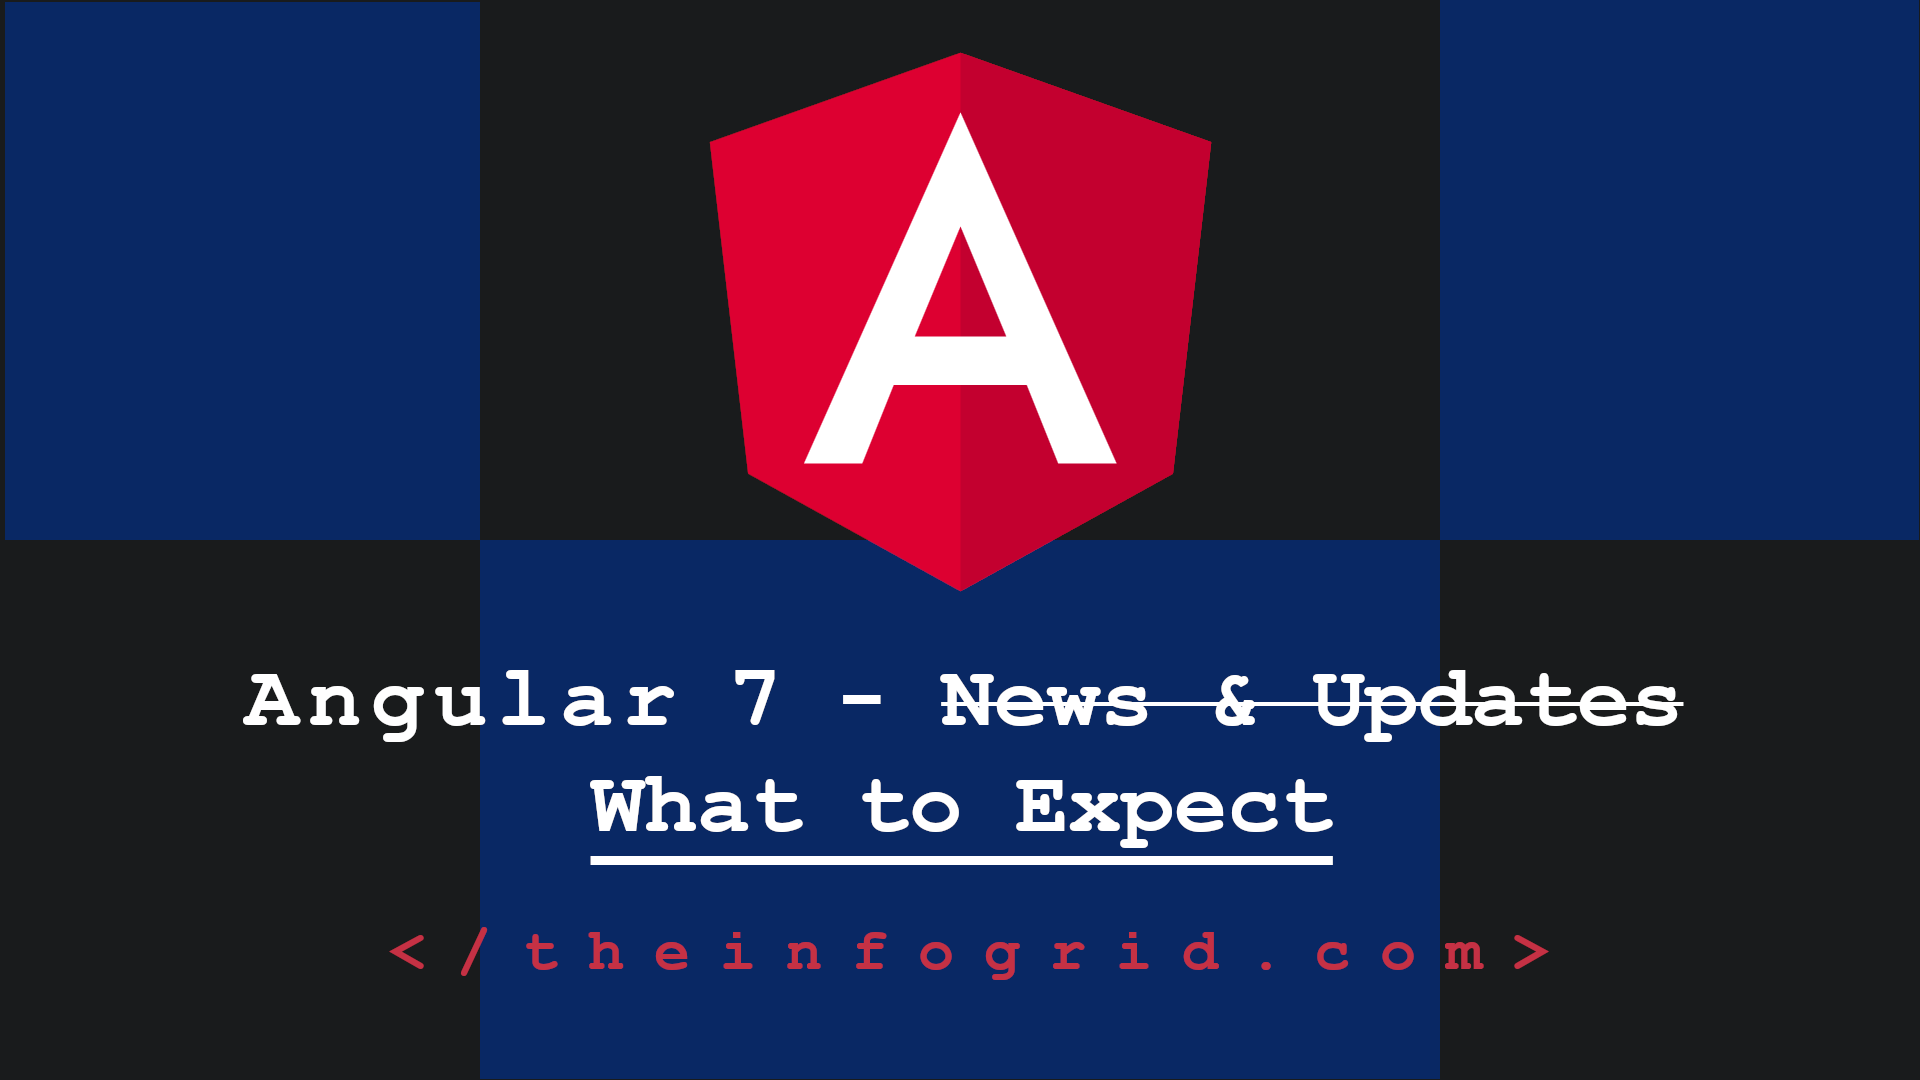 Angular 7 Spotlight – News and Updates | Coding Latte - Coding is fun